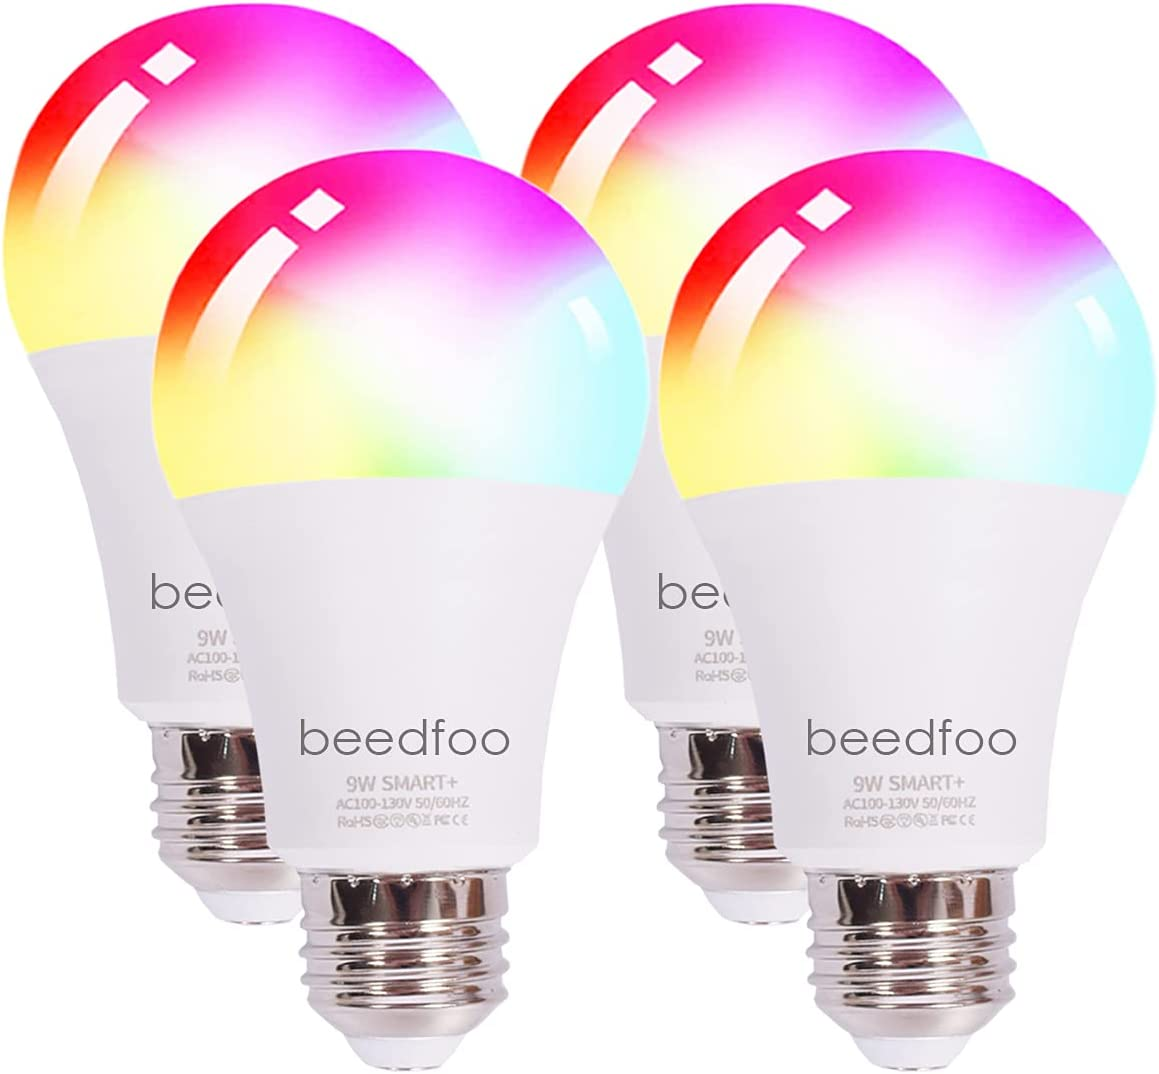 Led Lights New Shipping Free Shipping for Bedroom A19 E26 9W Bulbs Light Smart Super popular specialty store Changi Color